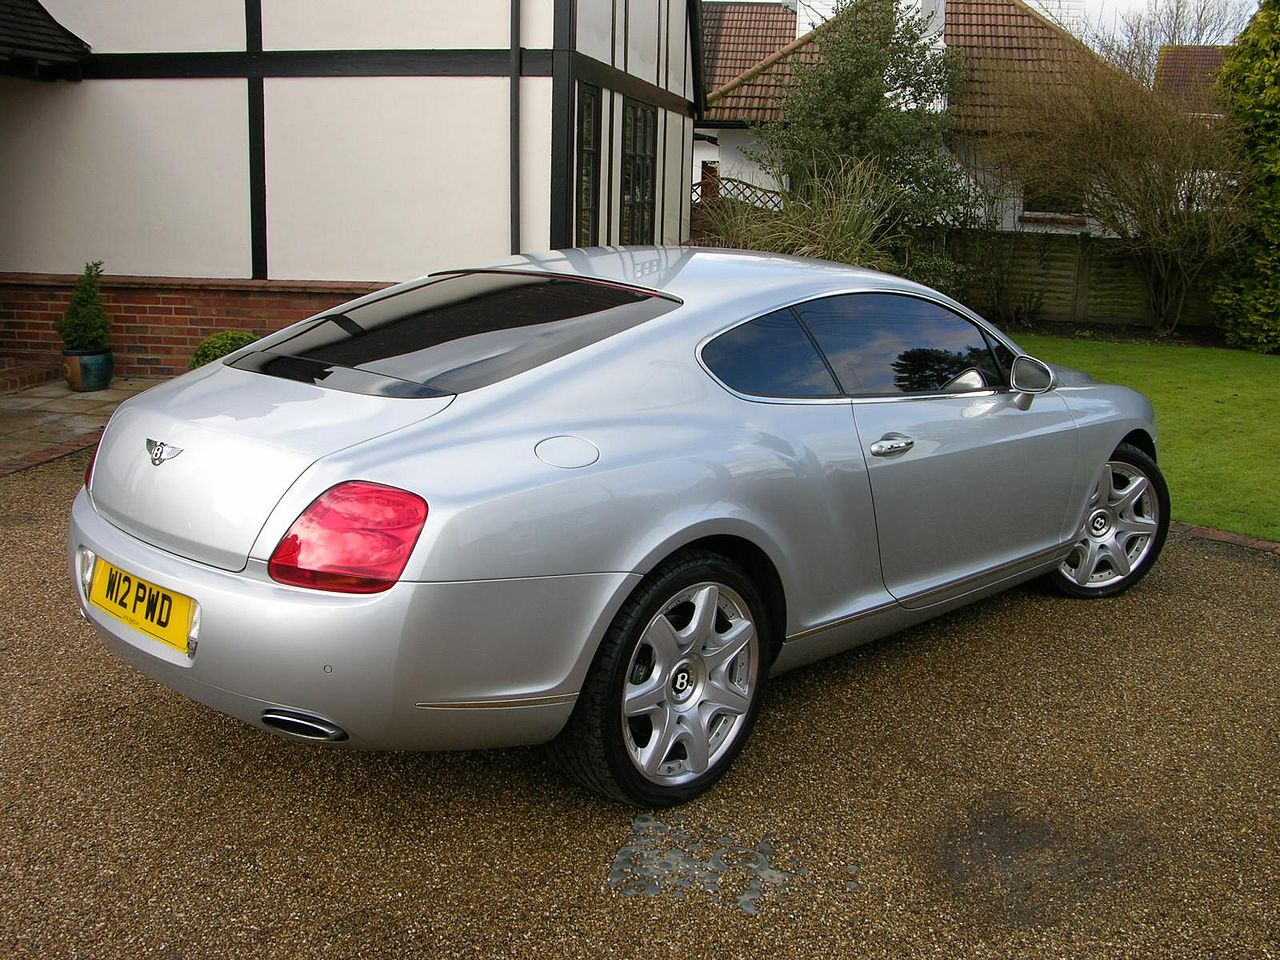 spur bentley wiki continental flying gt wikimedia sale for file commons